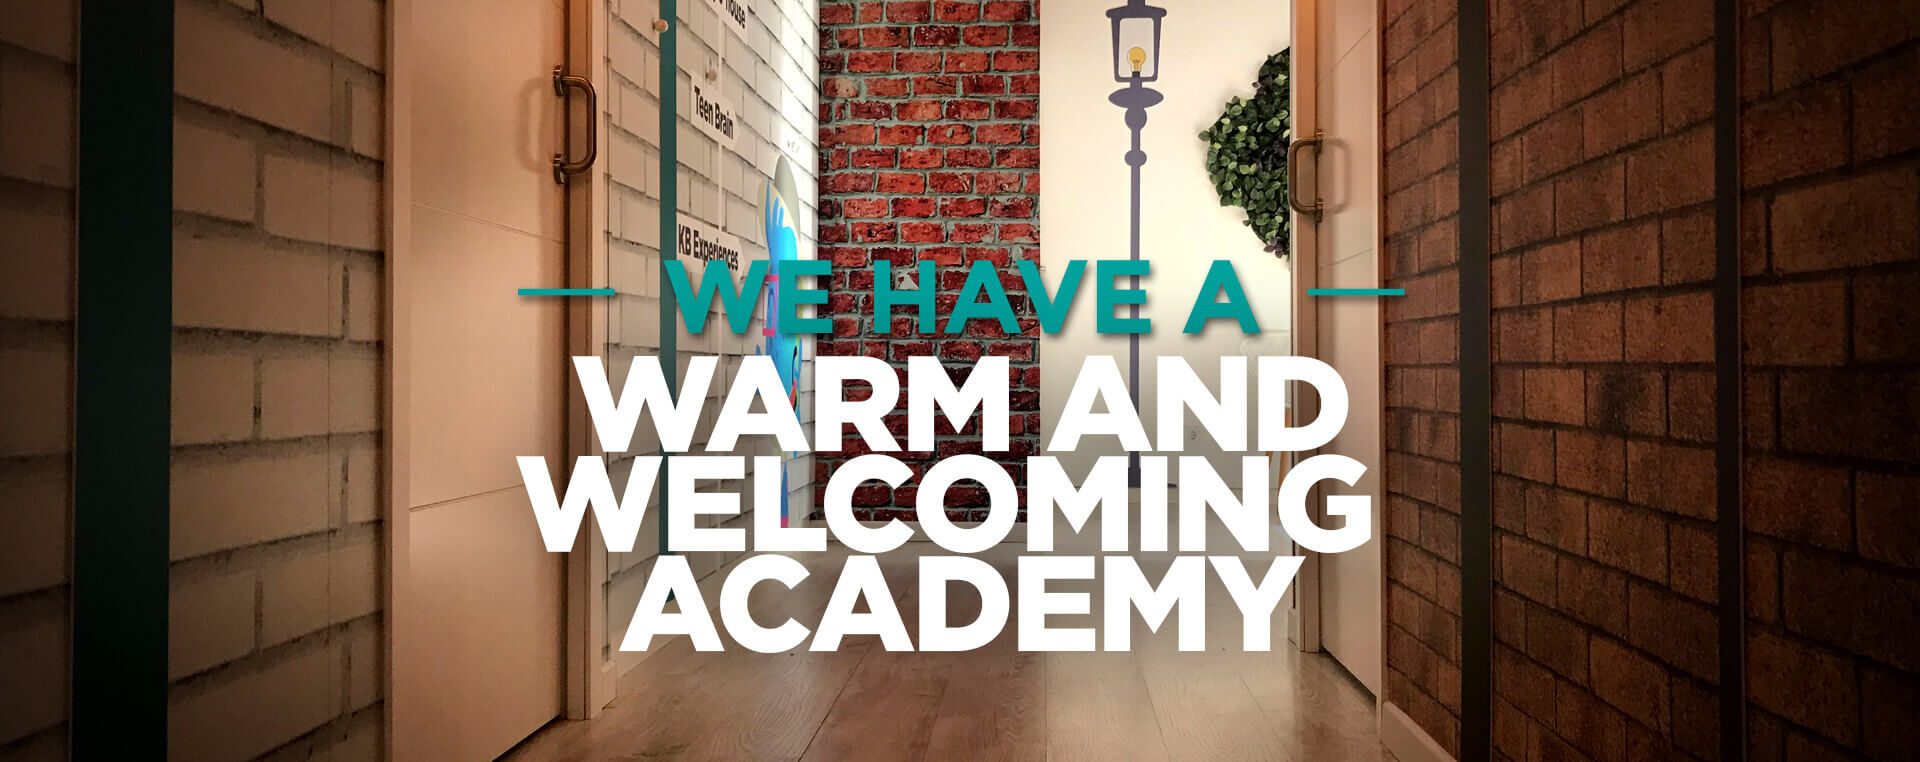 welcoming academy - franquicia idiomas